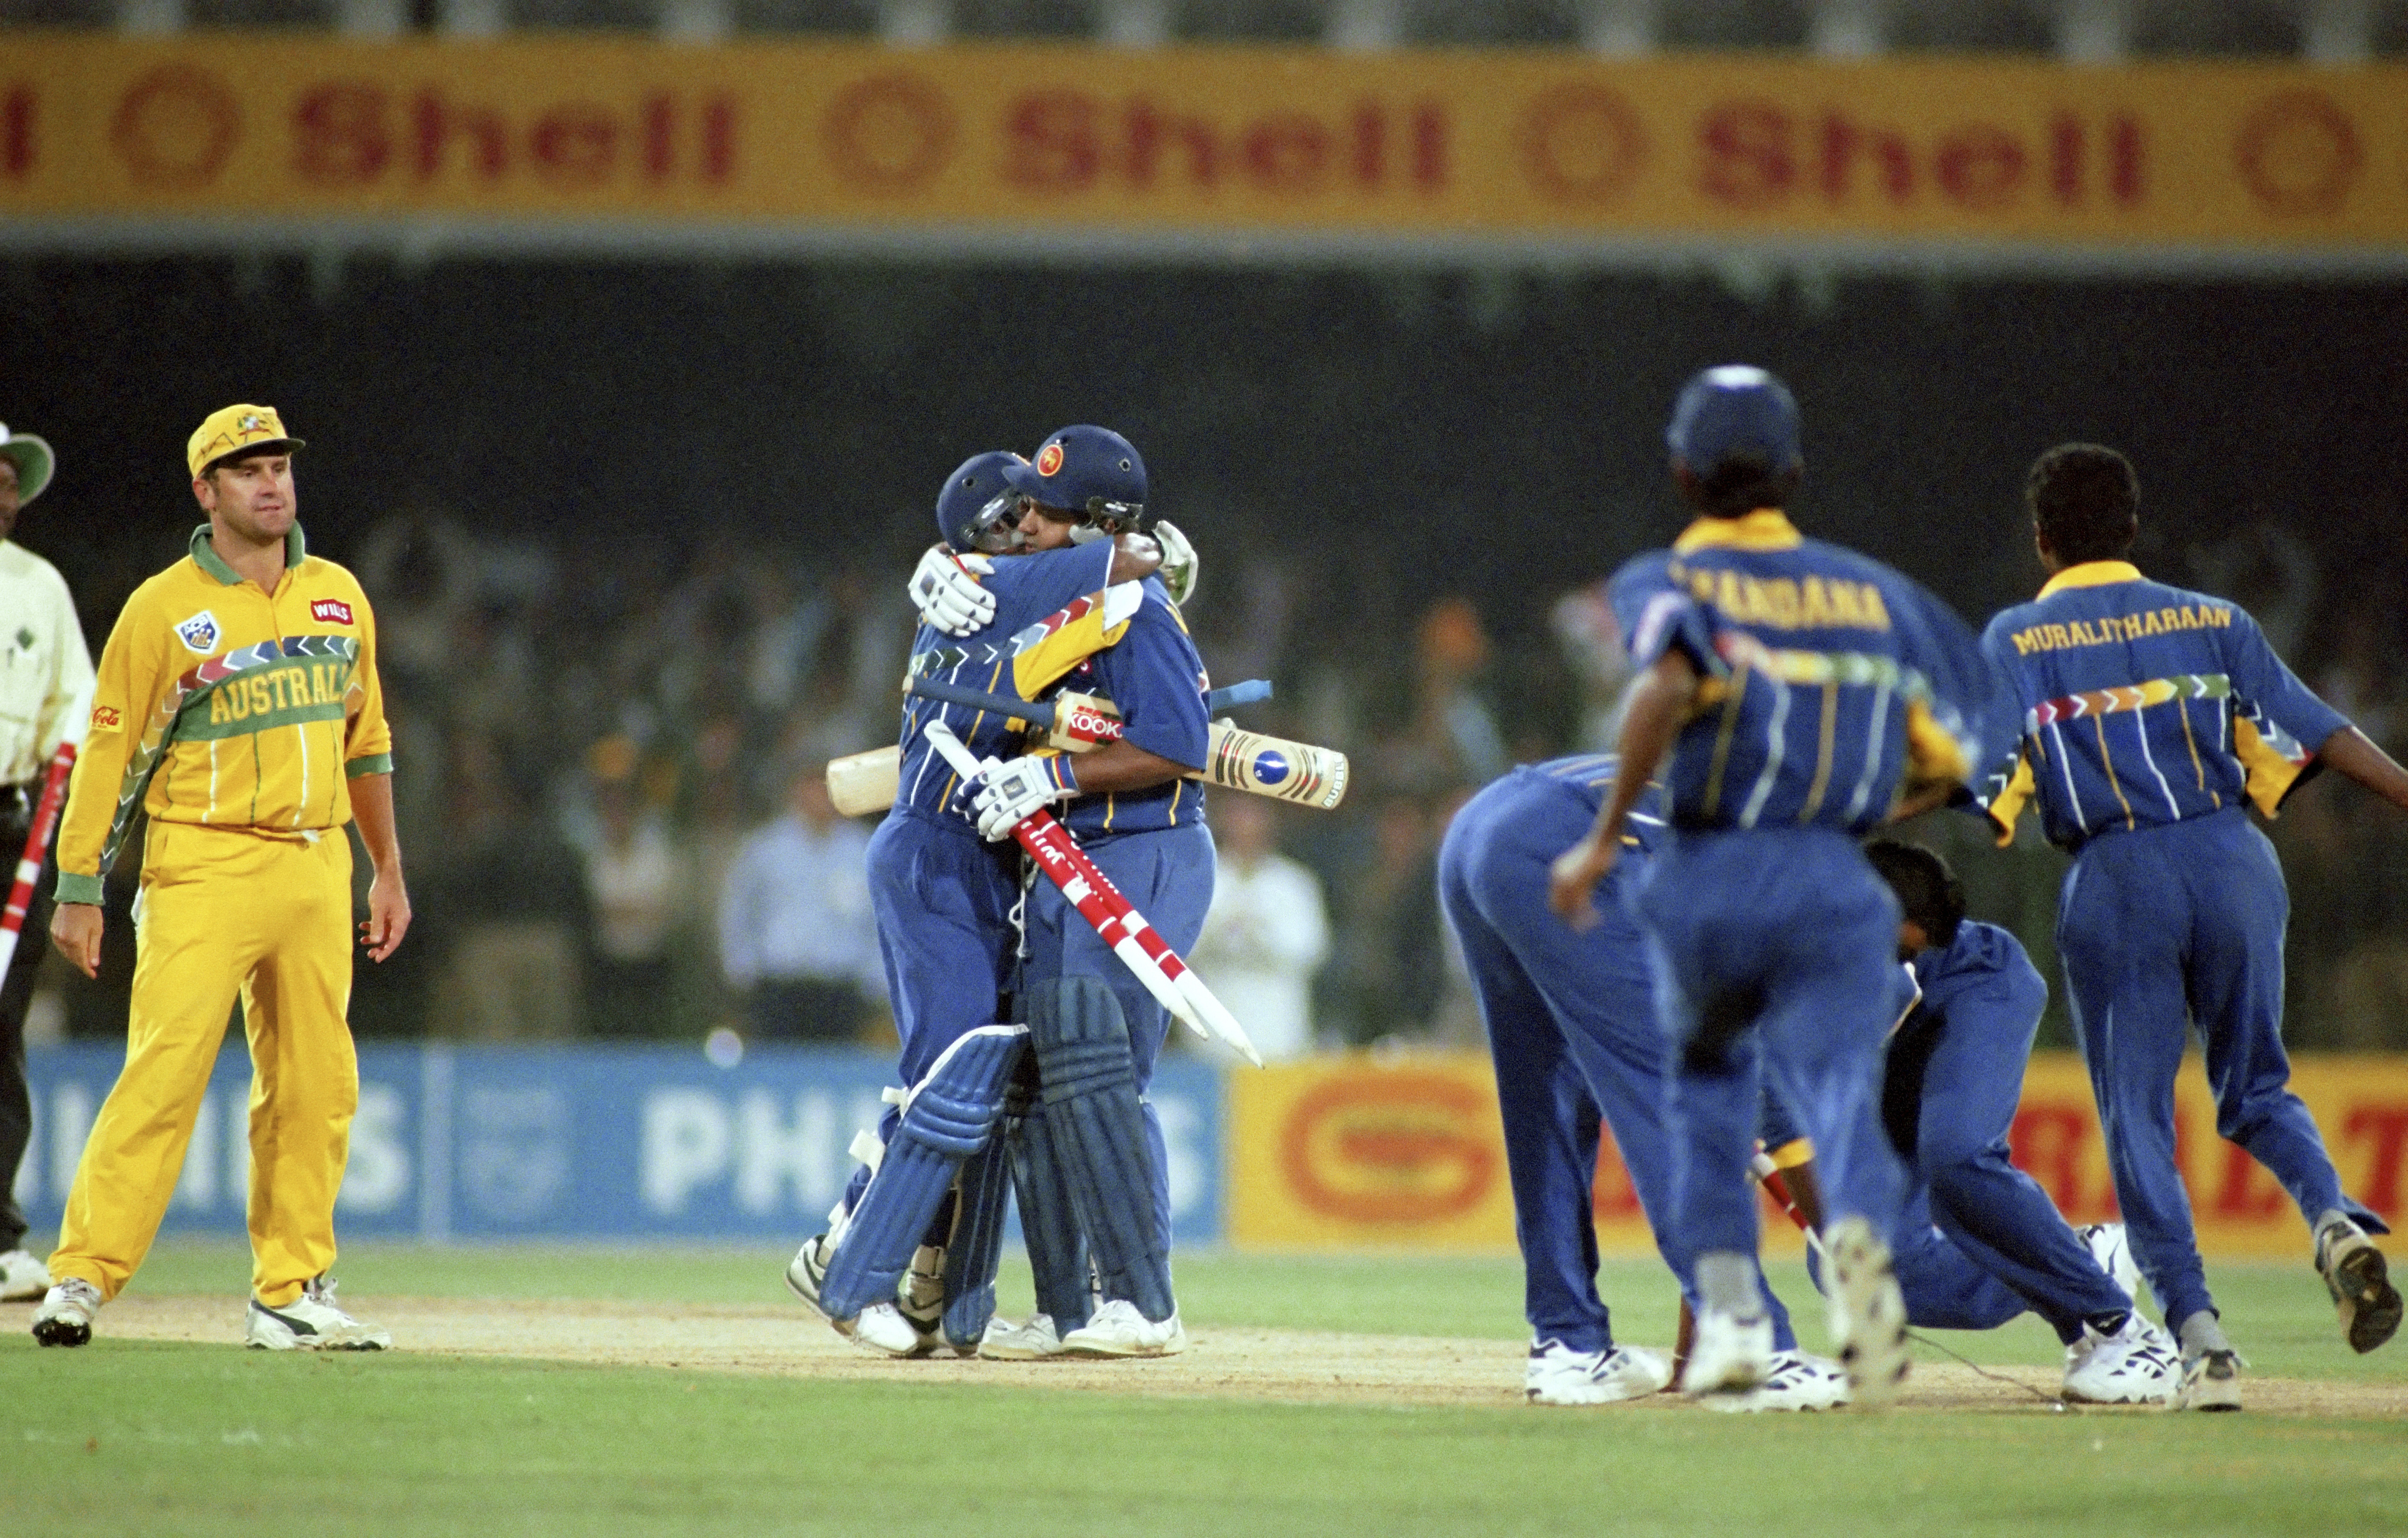 Men's Cricket World Cup 1996 – Overview